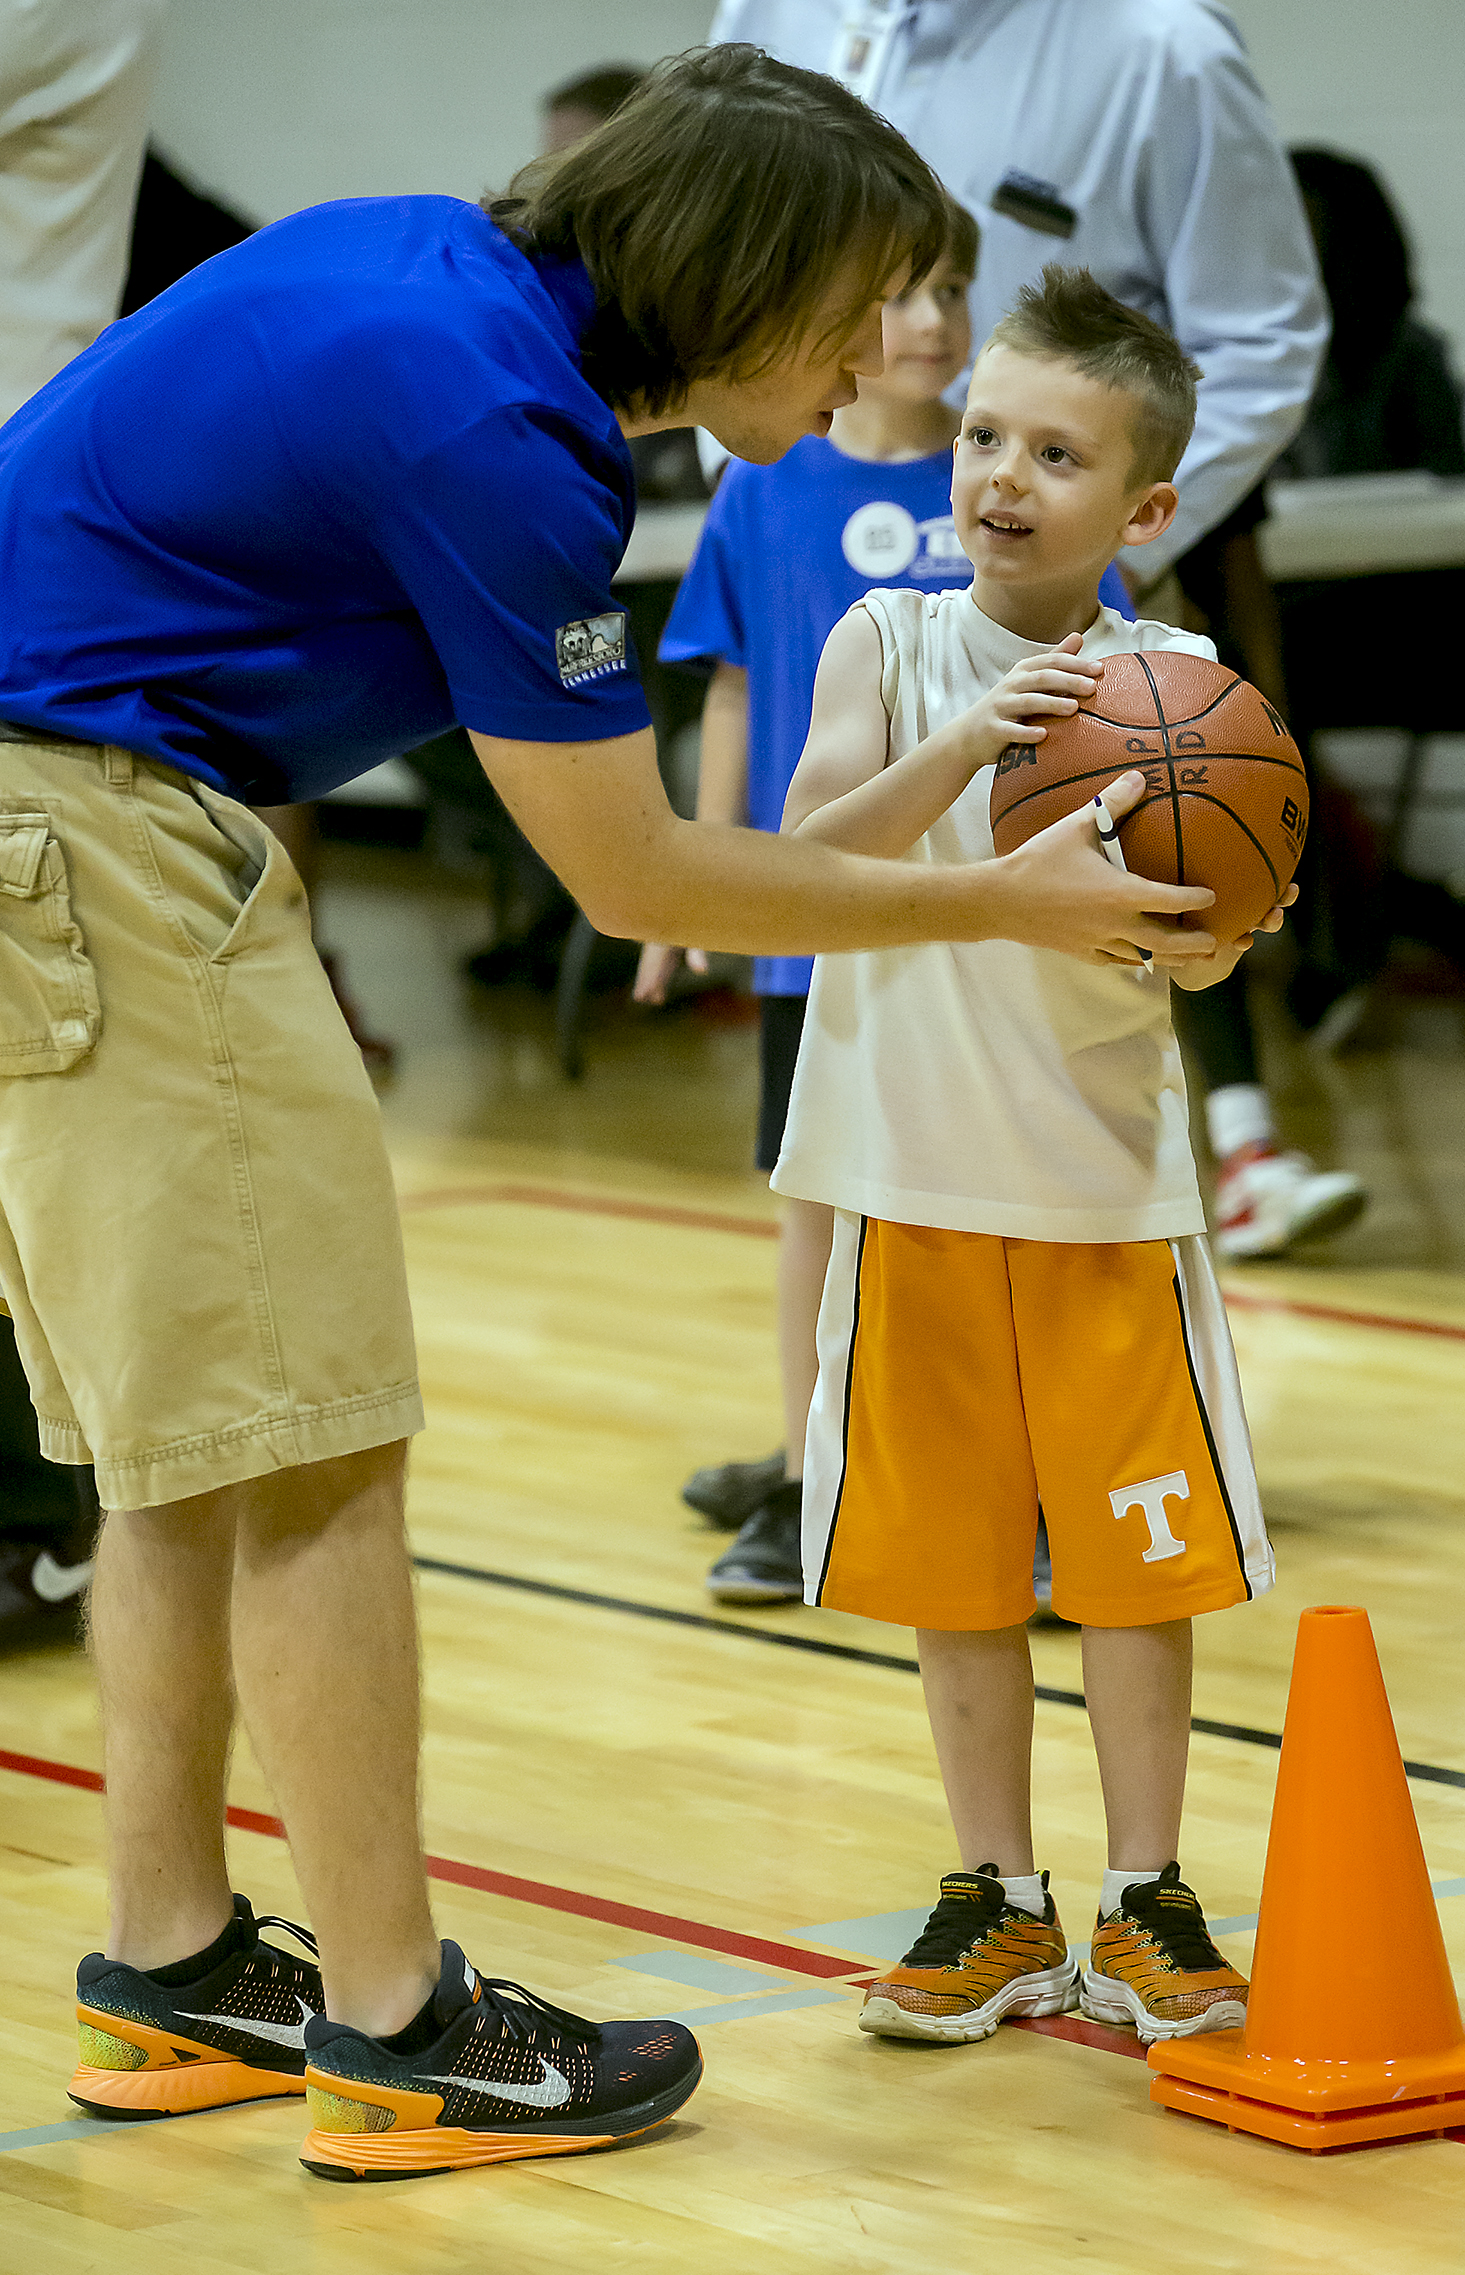 Murfreesboro Youth Basketball Program a 50+ Year Tradition